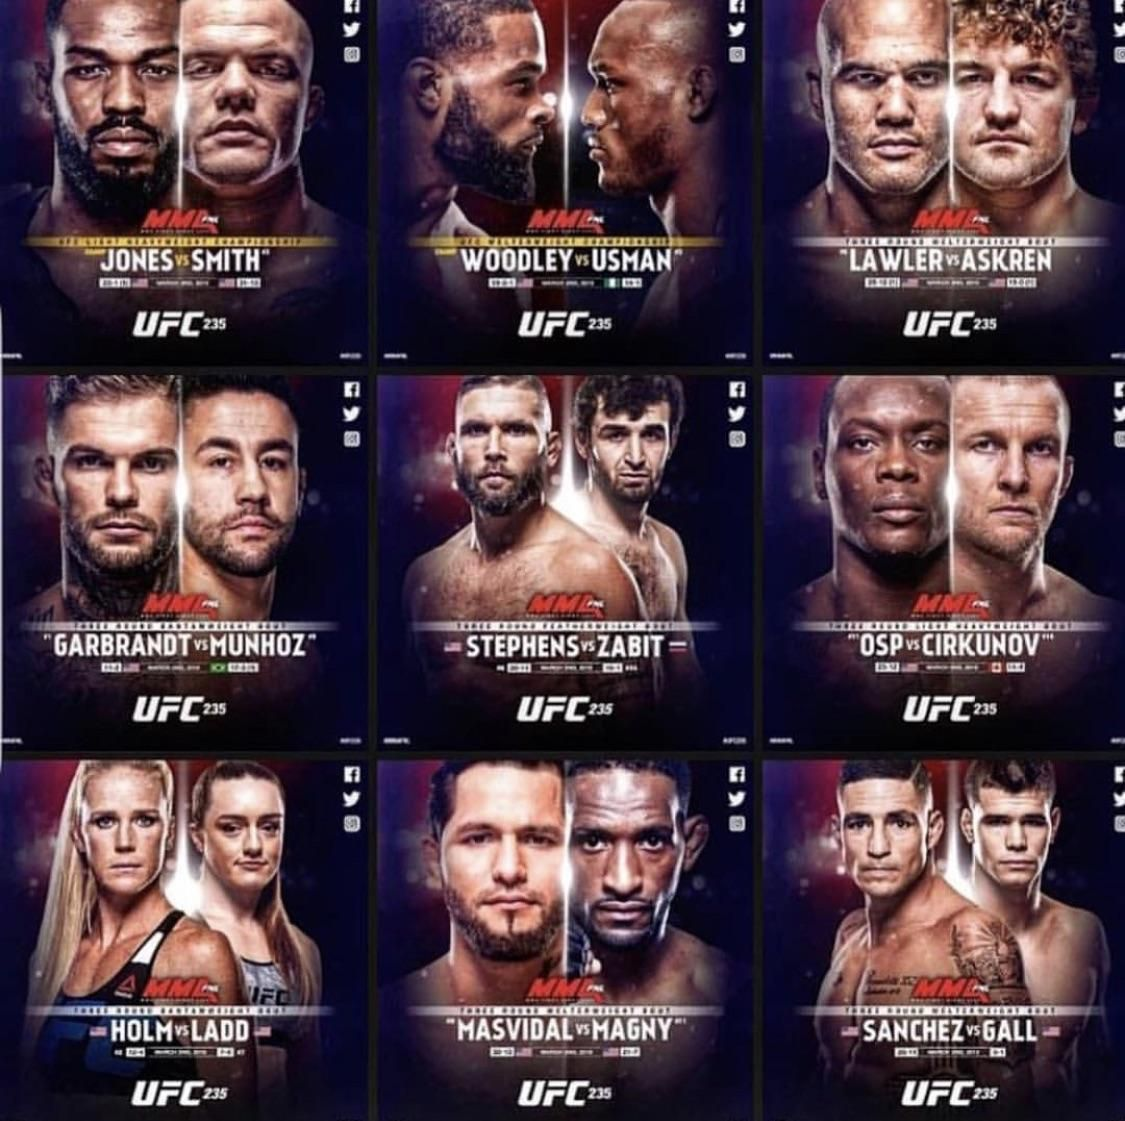 How to watch ufc 235 live stream online with images